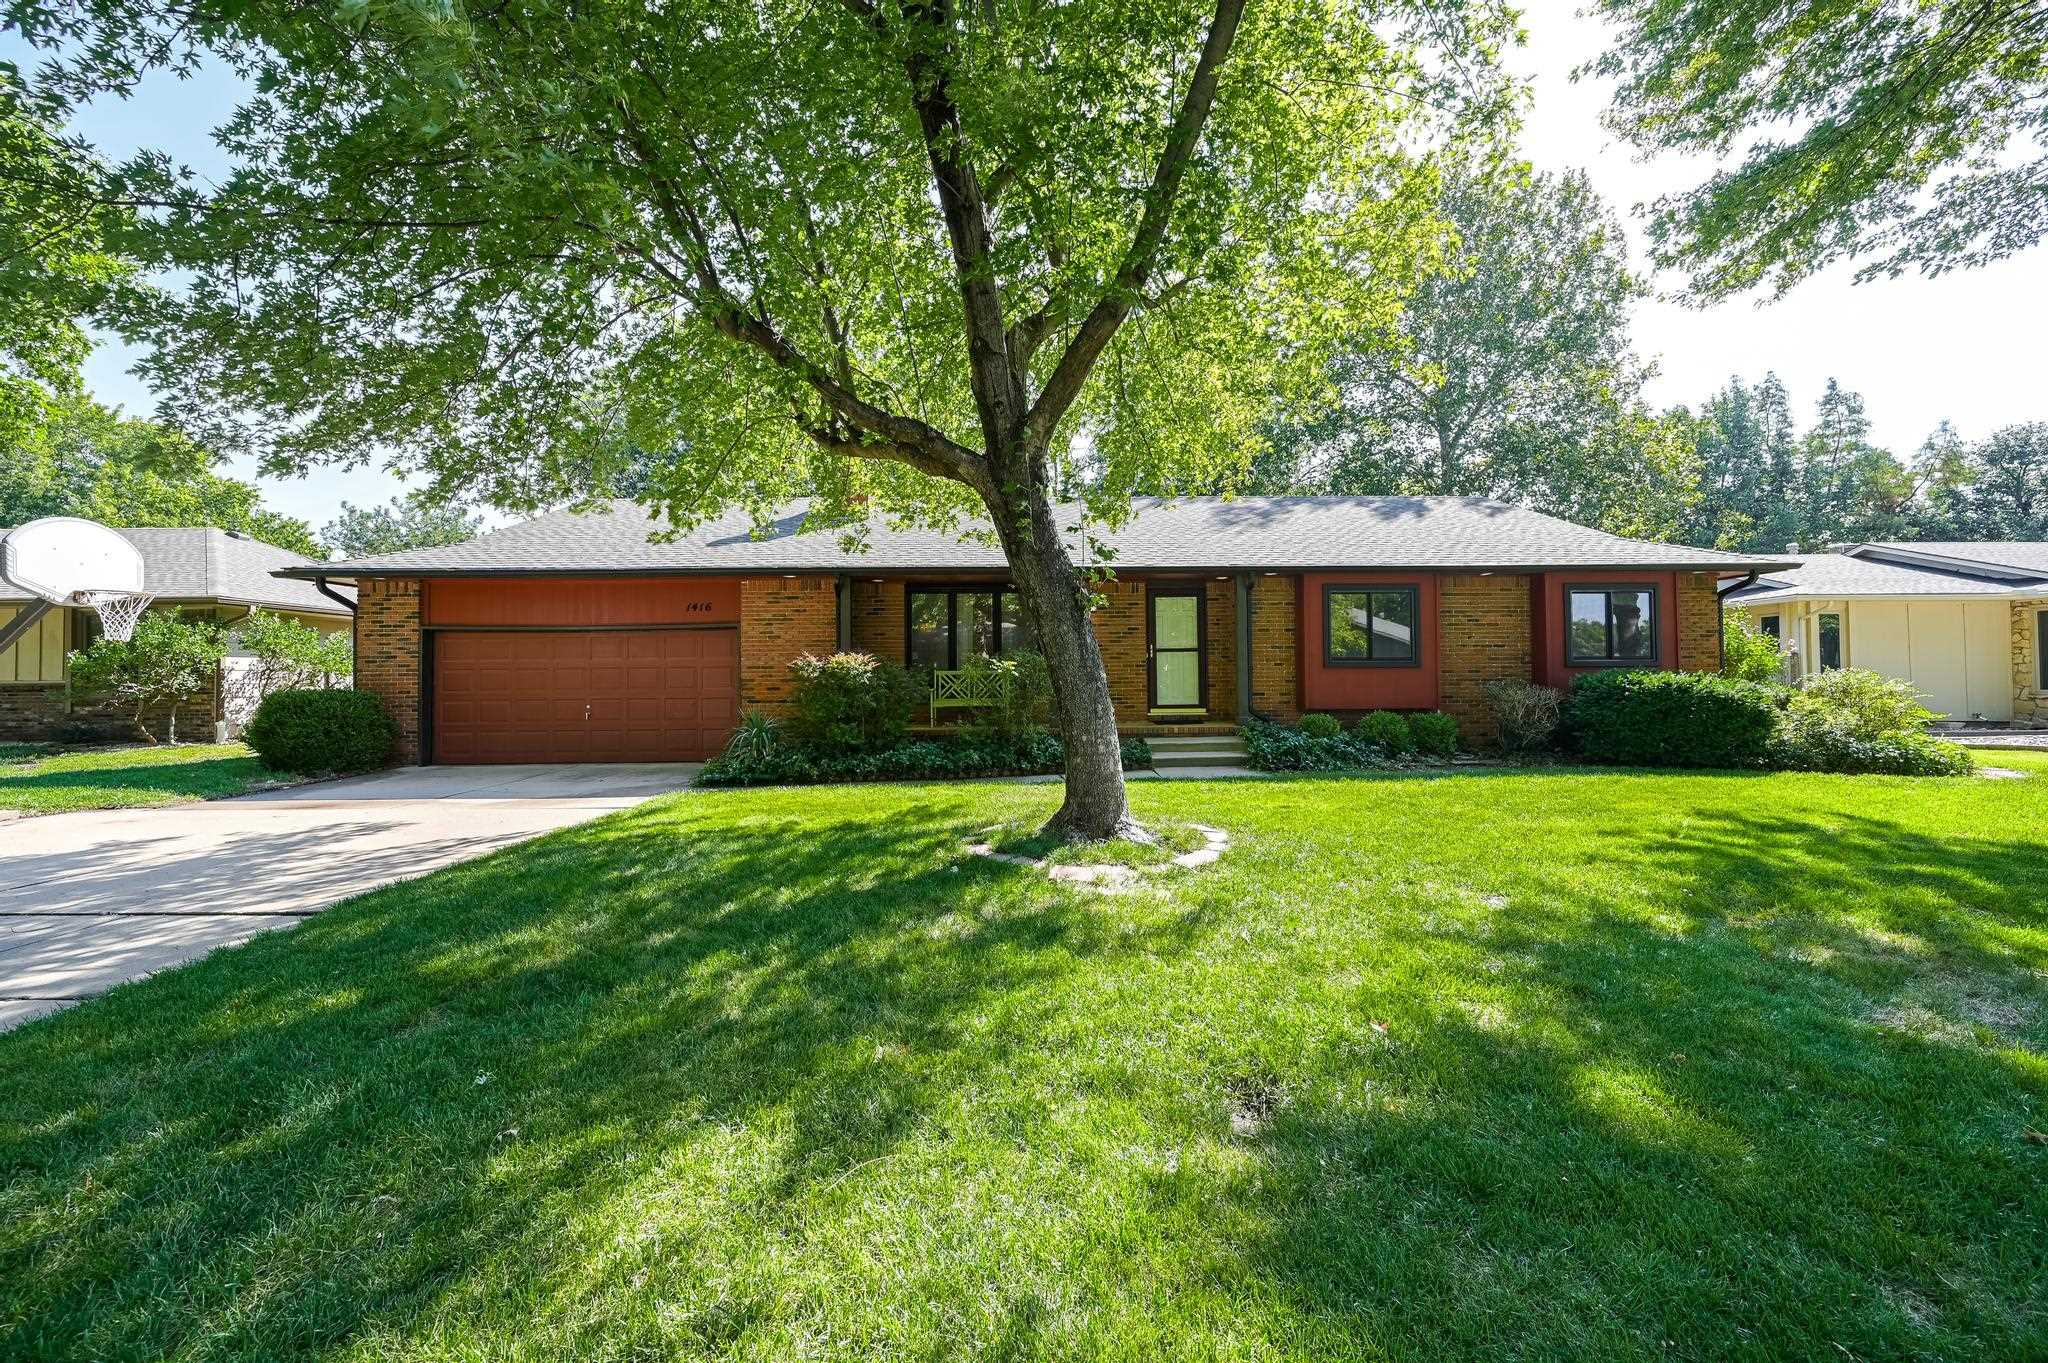 Great 3 Bedroom, 2 Bath home in the Maize school district with a huge bonus room in the basement! Th